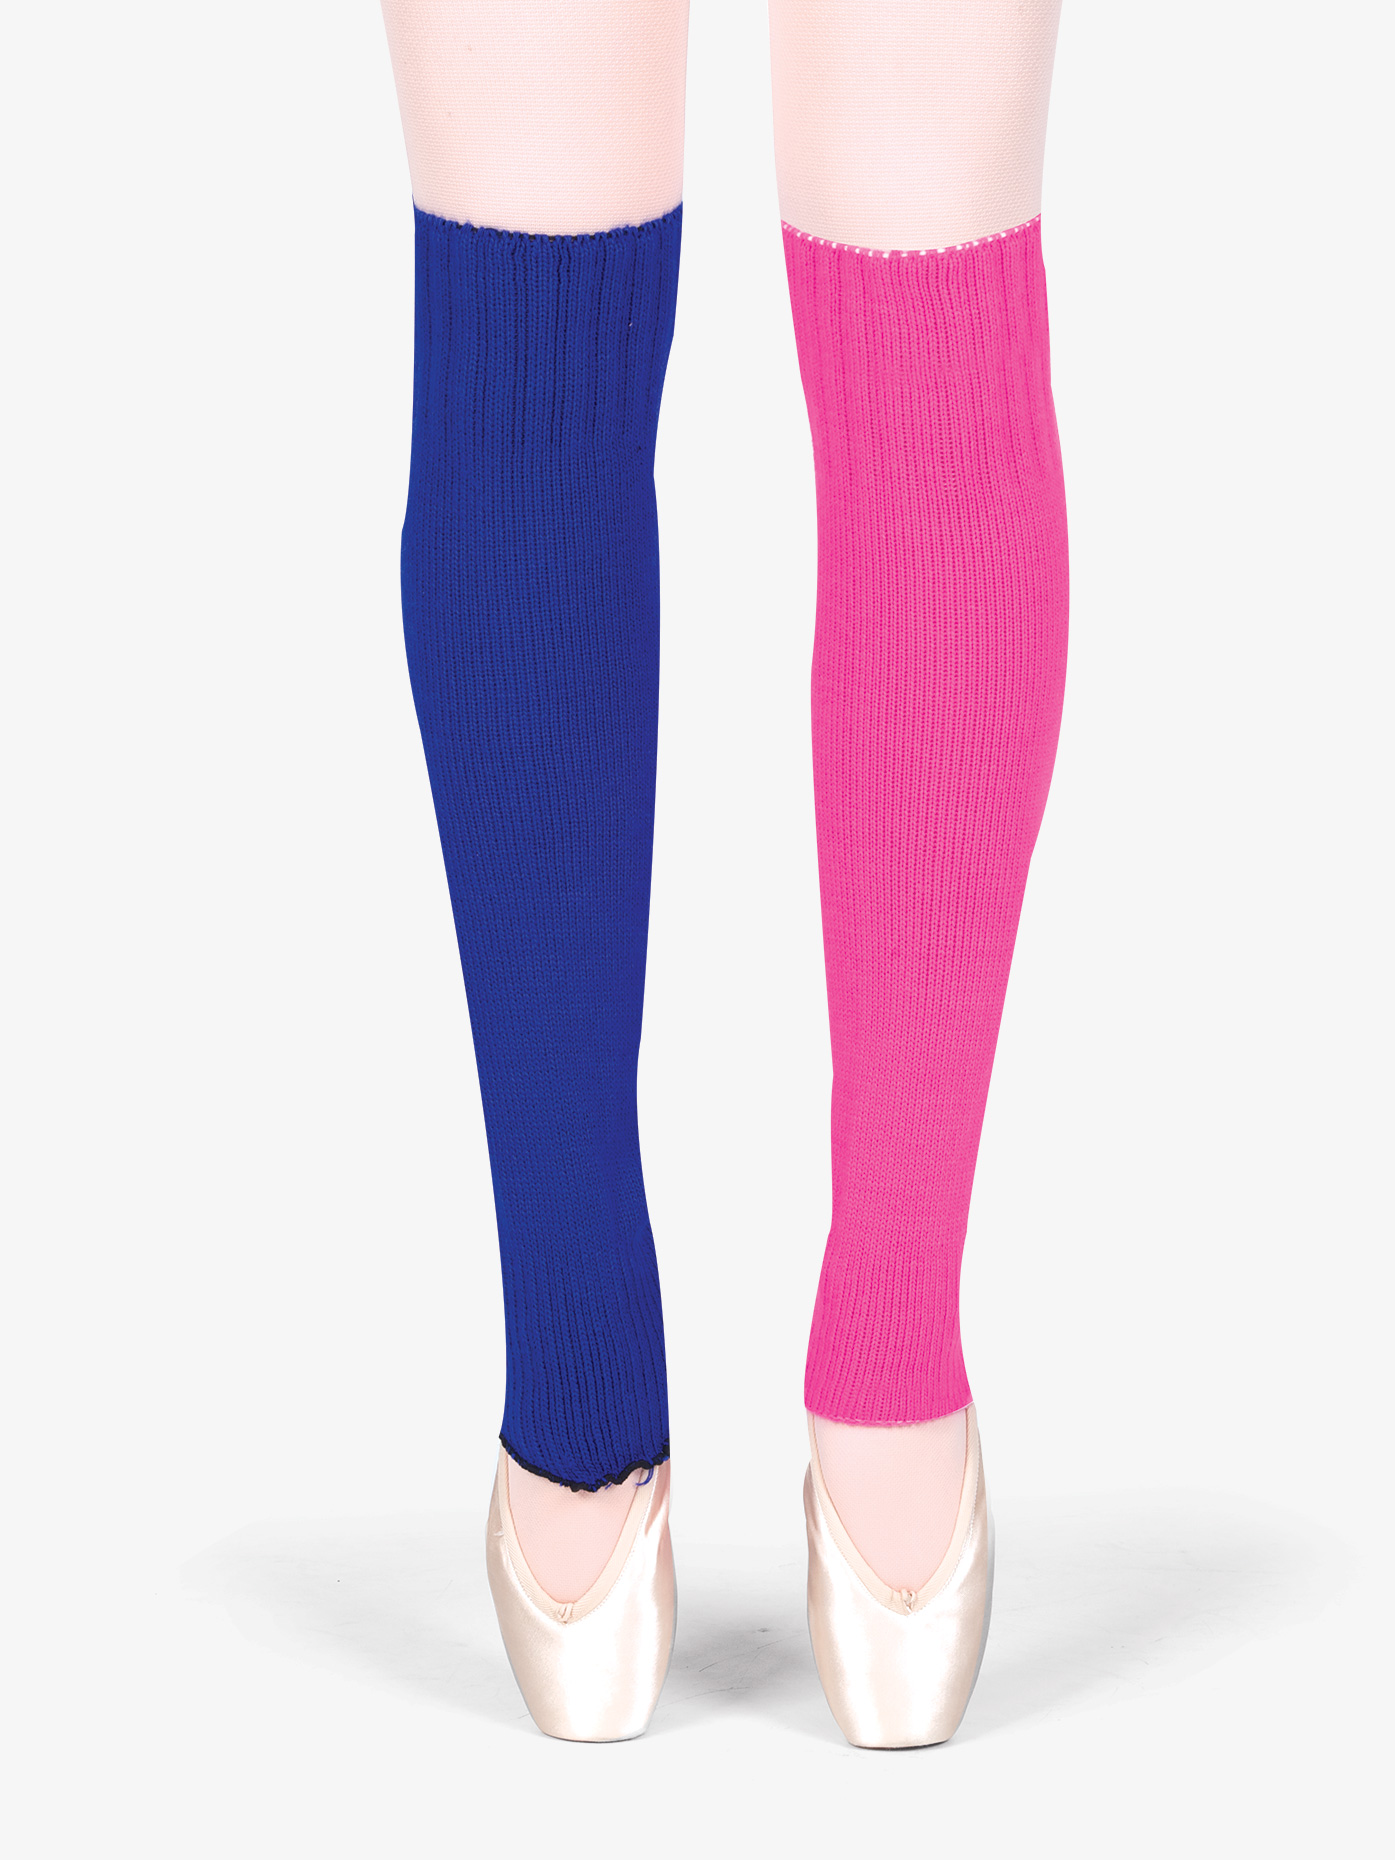 Discount Dance Supply Adult Bright 21 Legwarmers 21